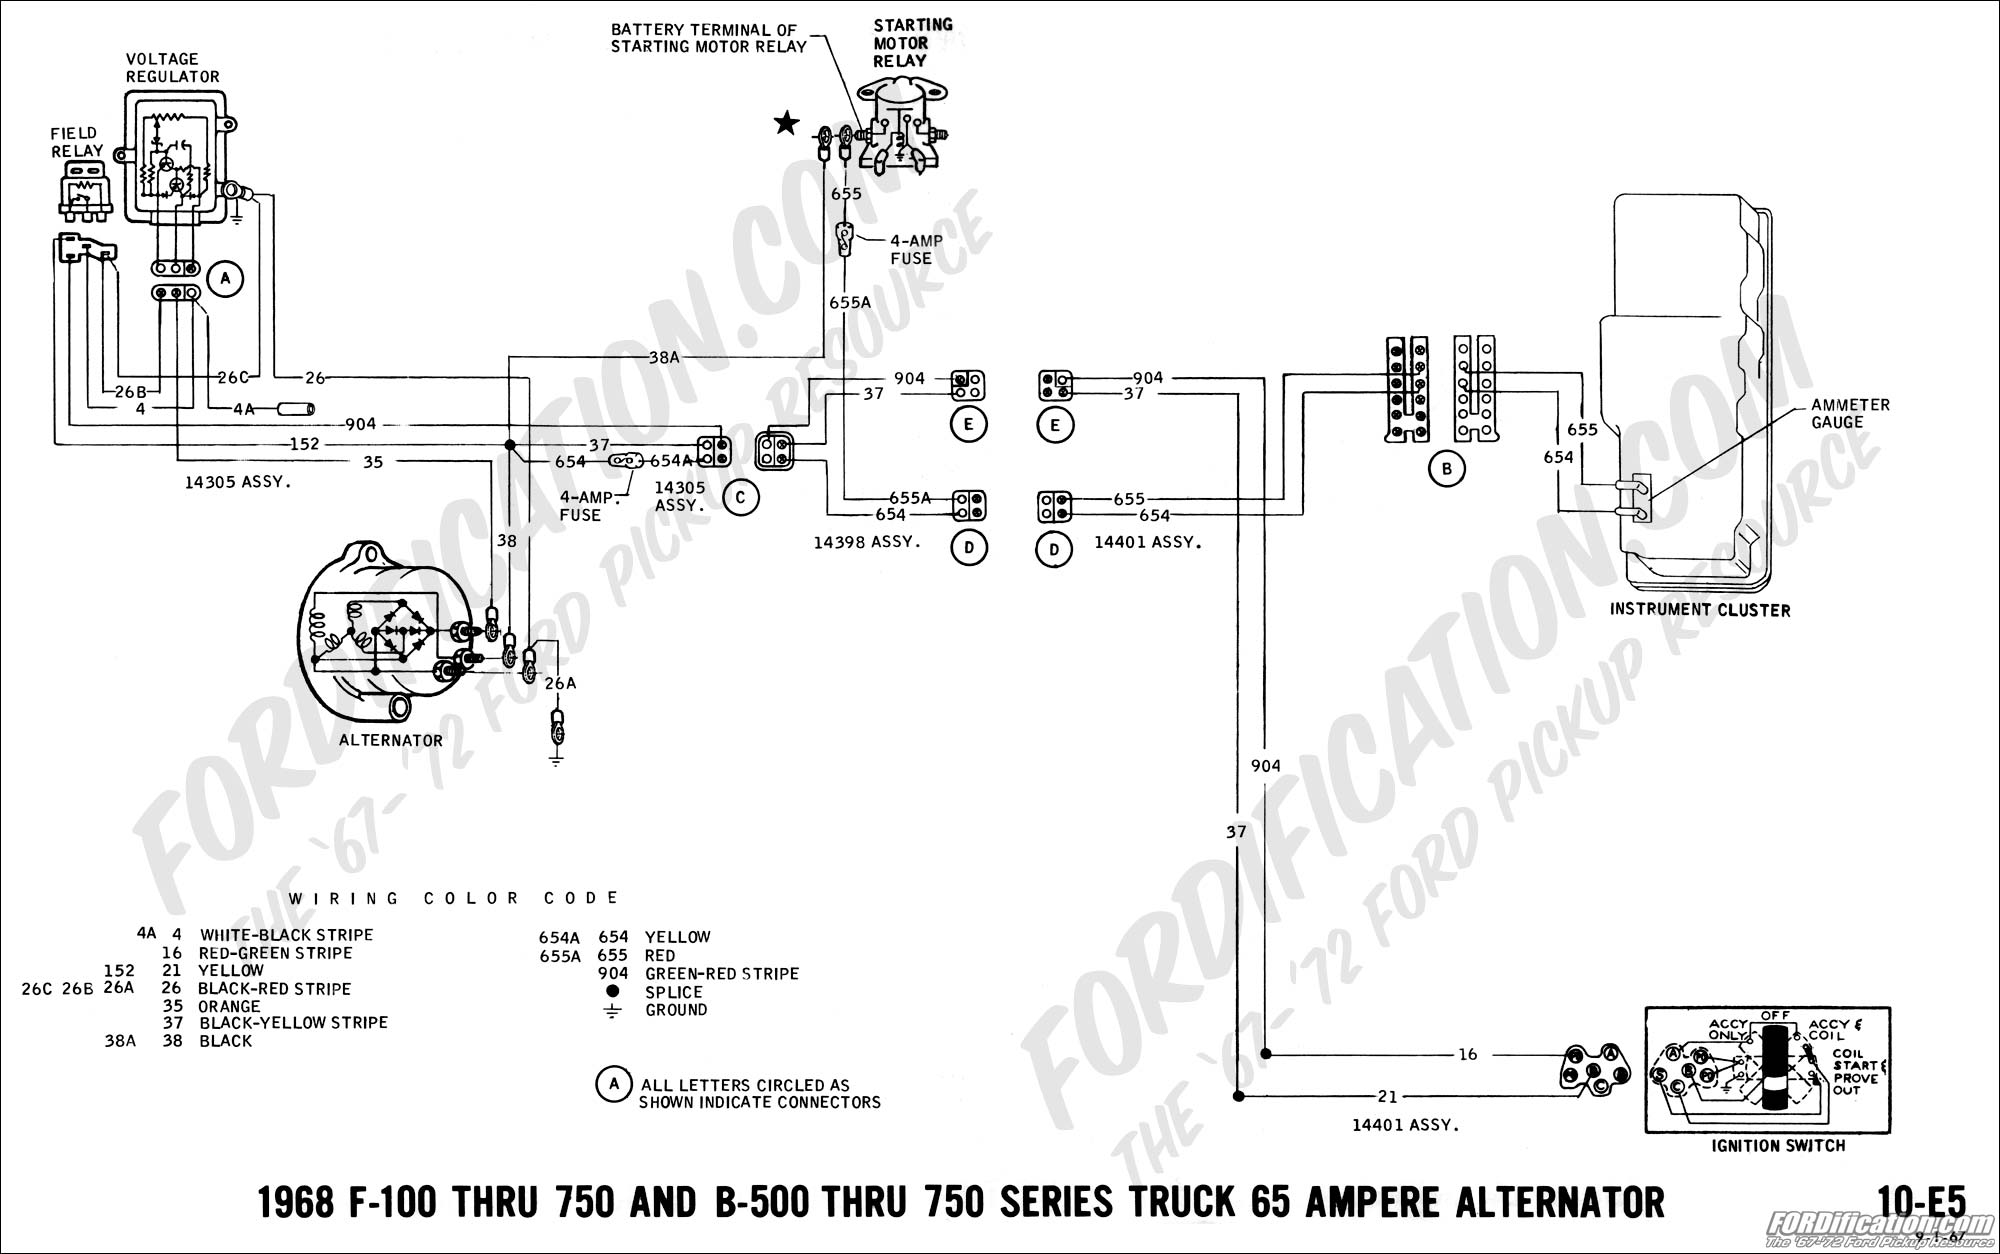 68 07 ford truck technical drawings and schematics section h wiring f750 wiring diagram at panicattacktreatment.co